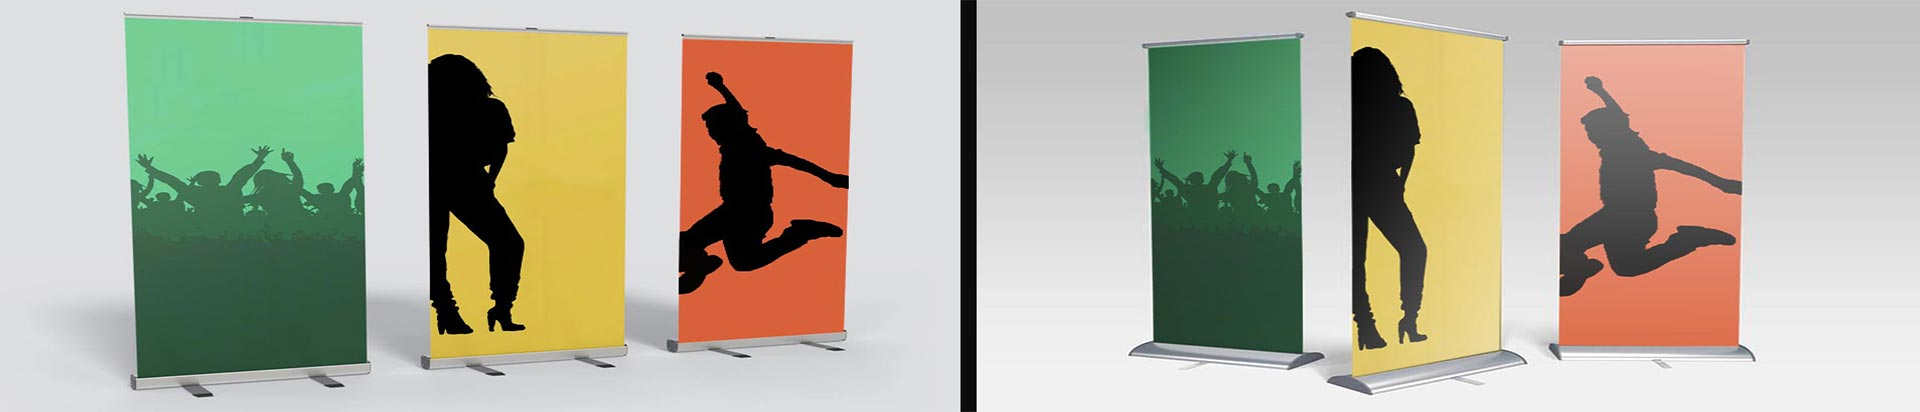 Pole-Banners